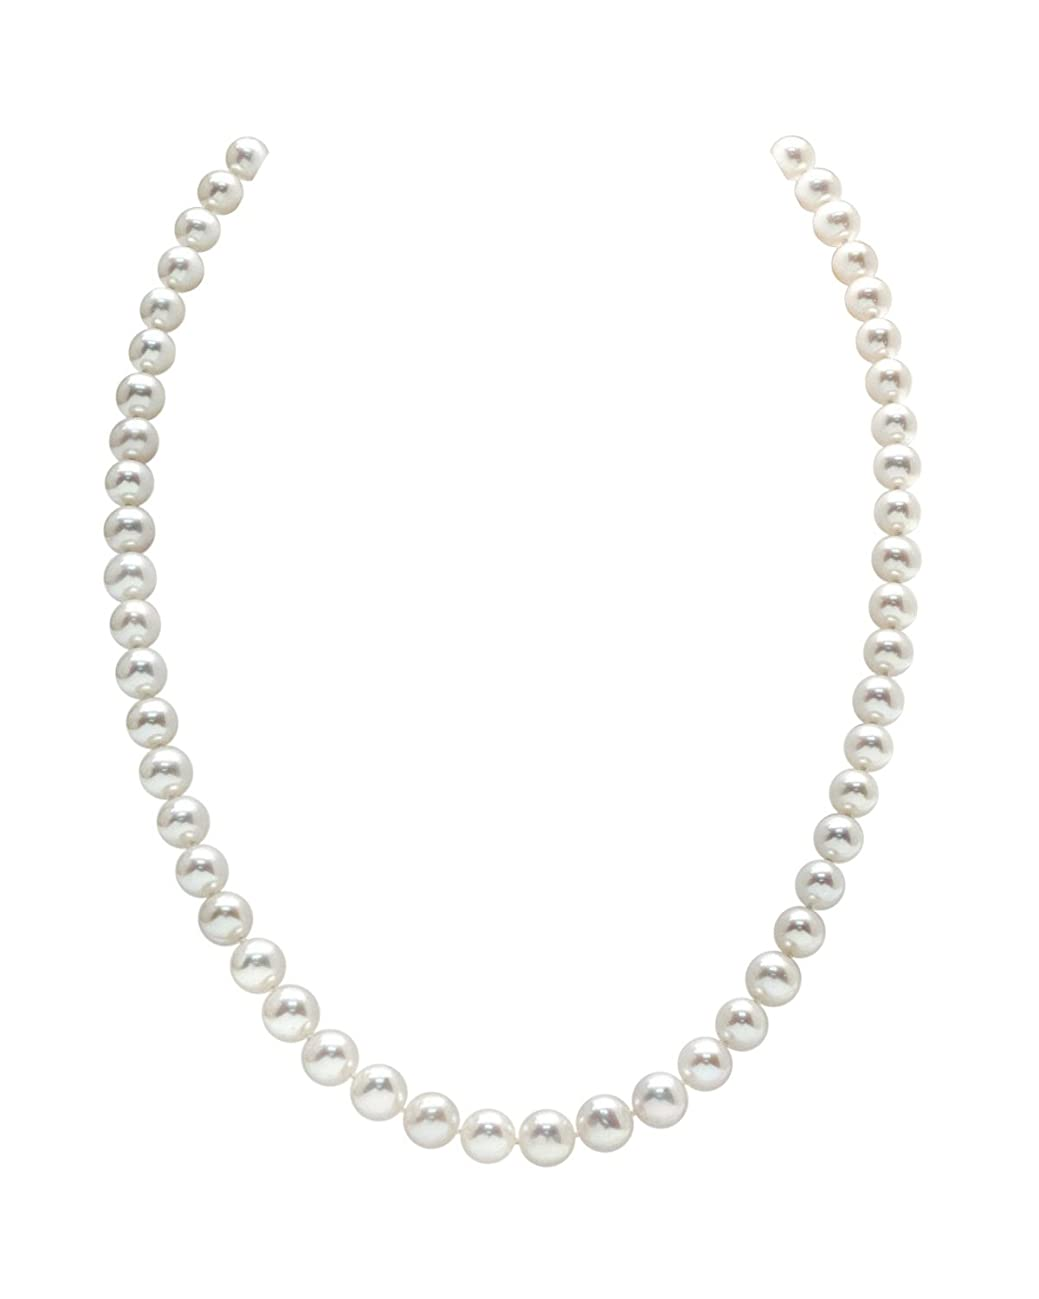 THE PEARL SOURCE 14K Gold 5.0-5.5mm AAAA Quality Round White Freshwater Cultured Pearl Necklace for Women 18